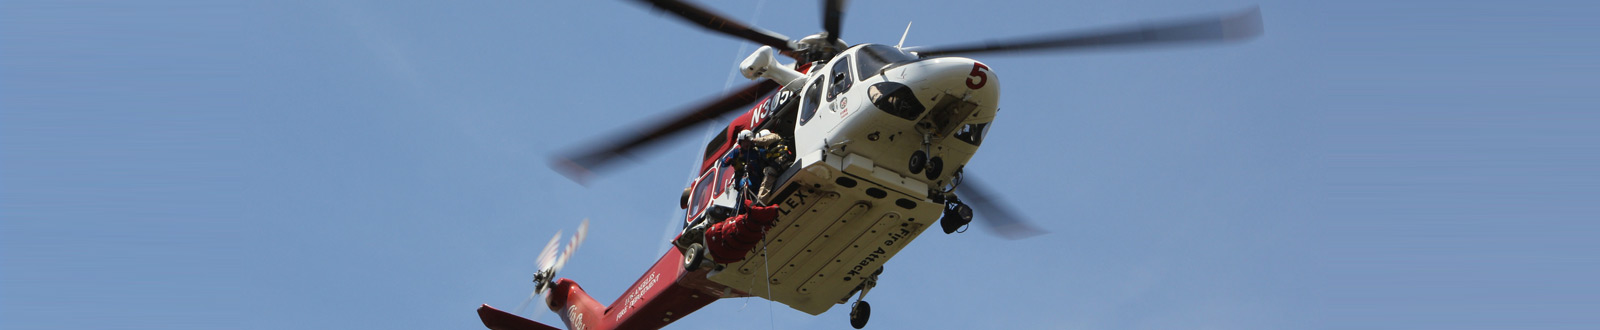 An LAFD helicopter in flight